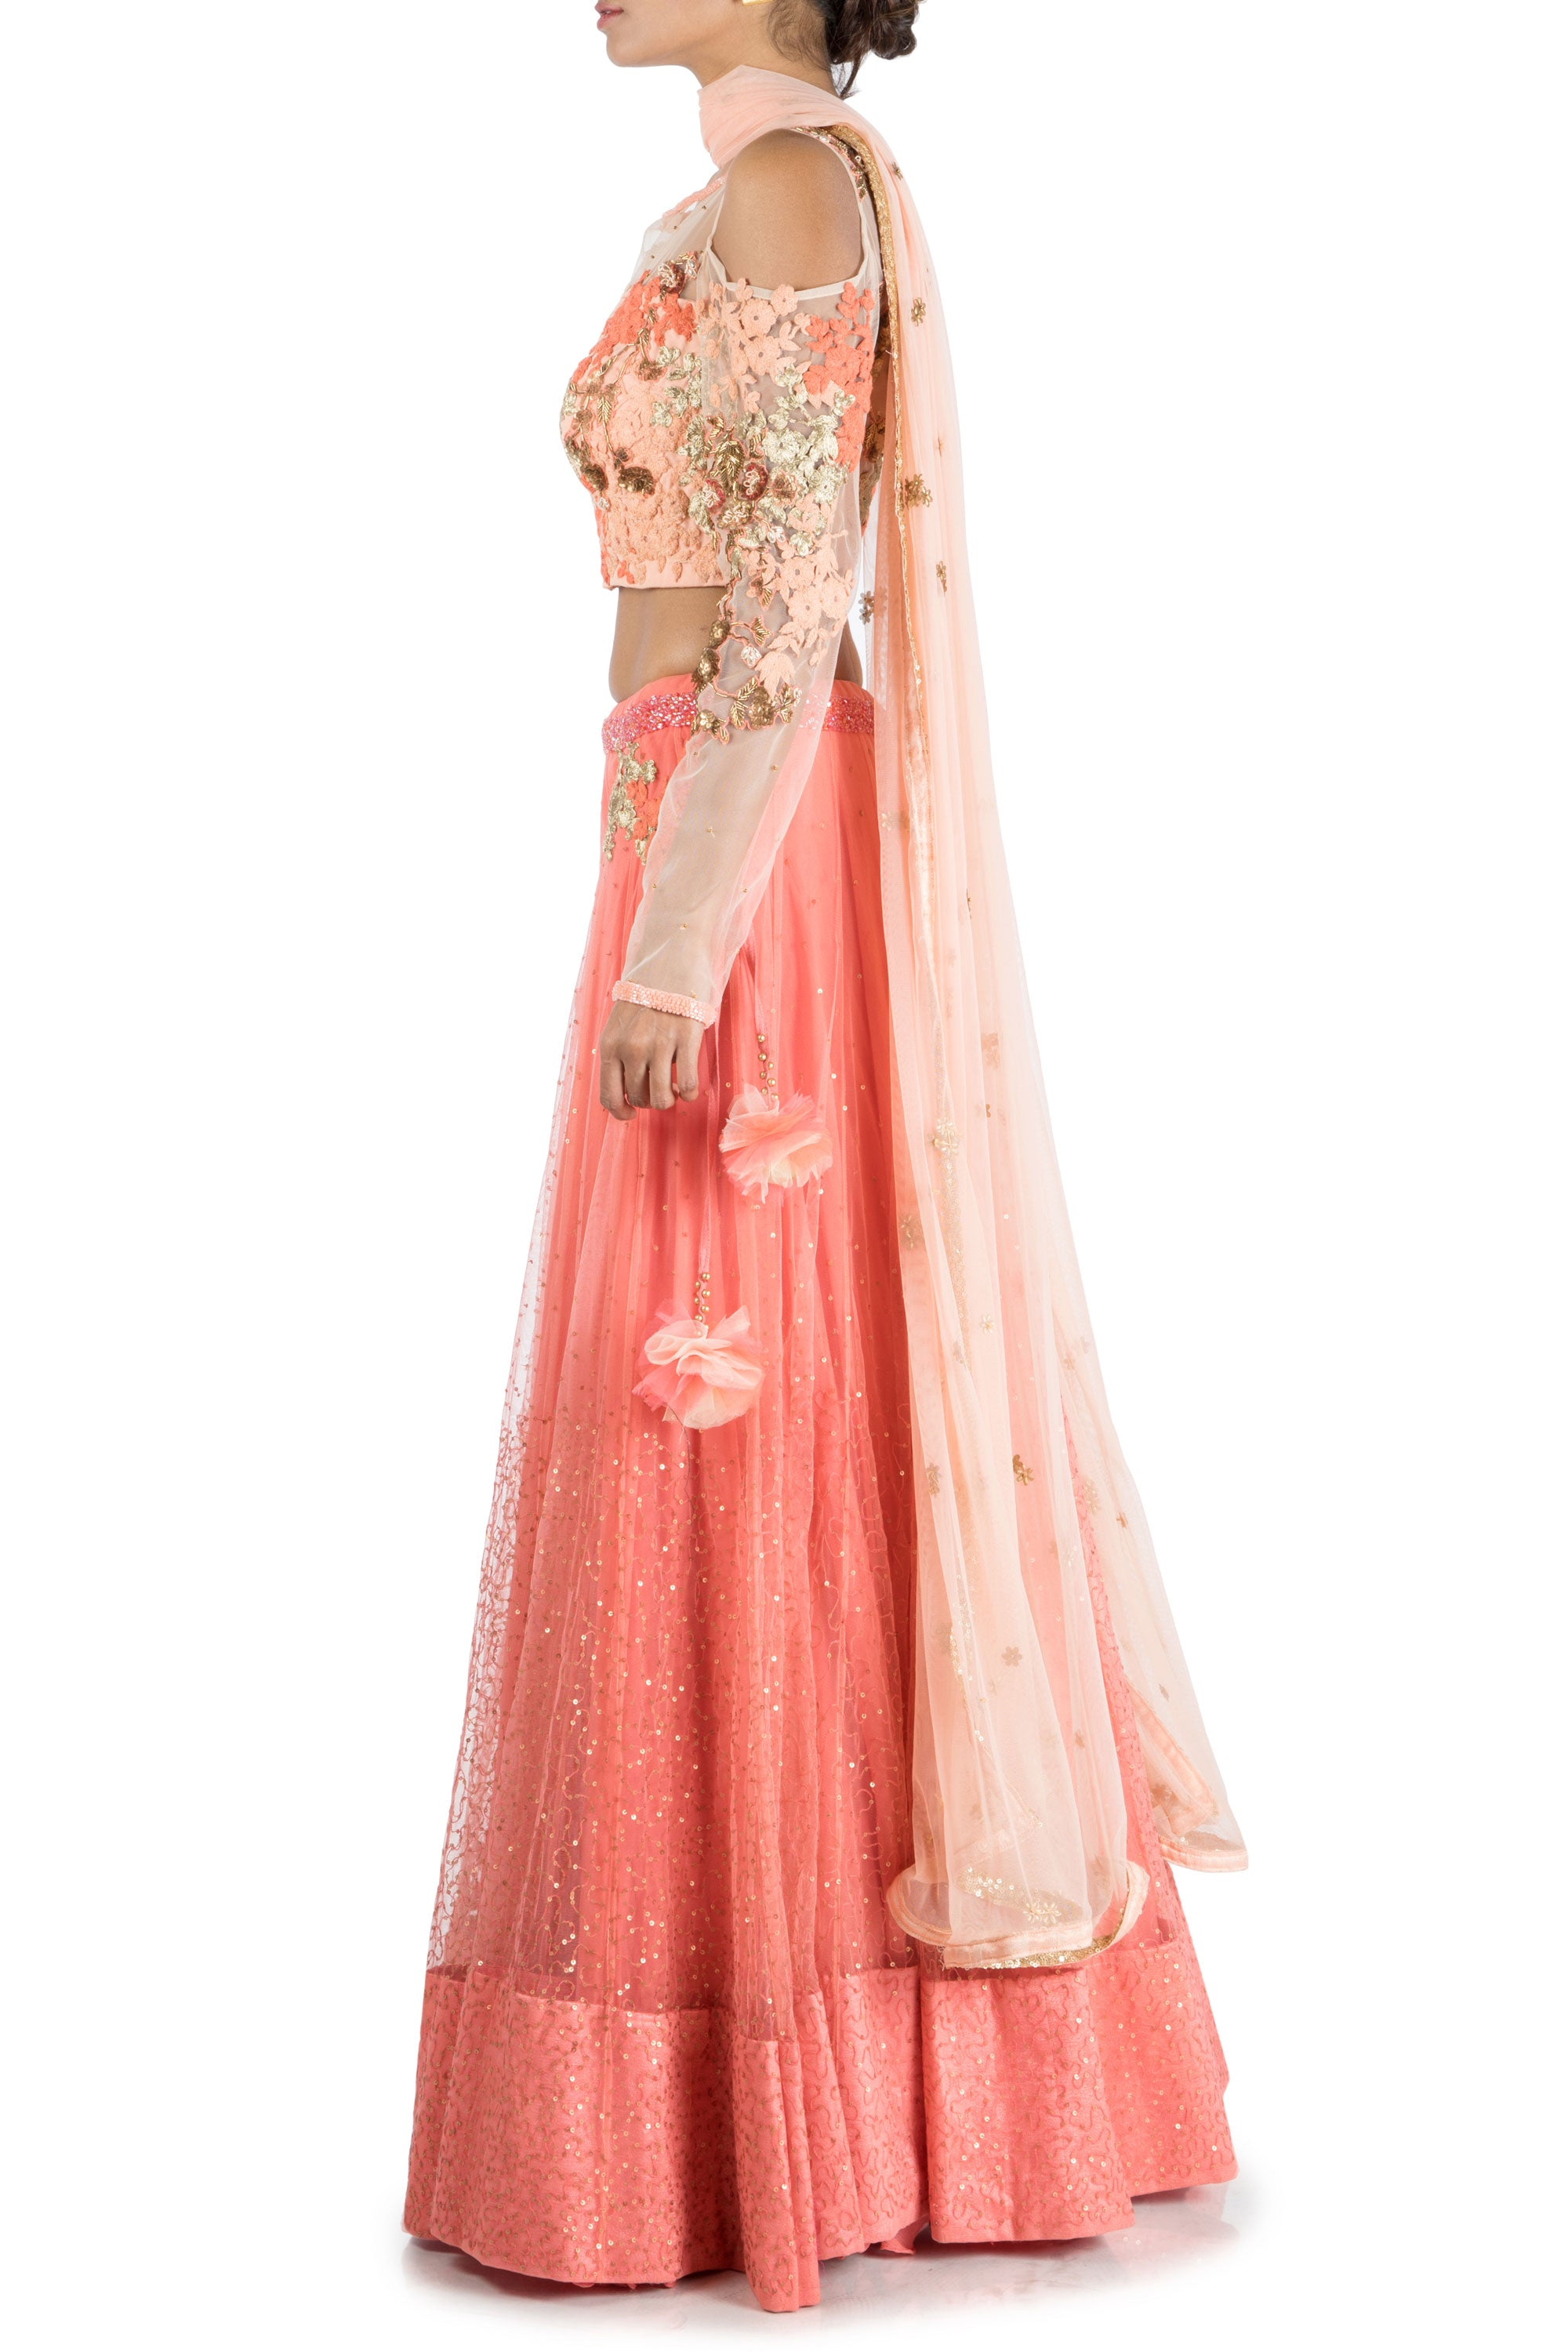 e5954783e36837 ... Dark Peach Lehenga With Embroidered Cold Shoulder Blouse Side ...